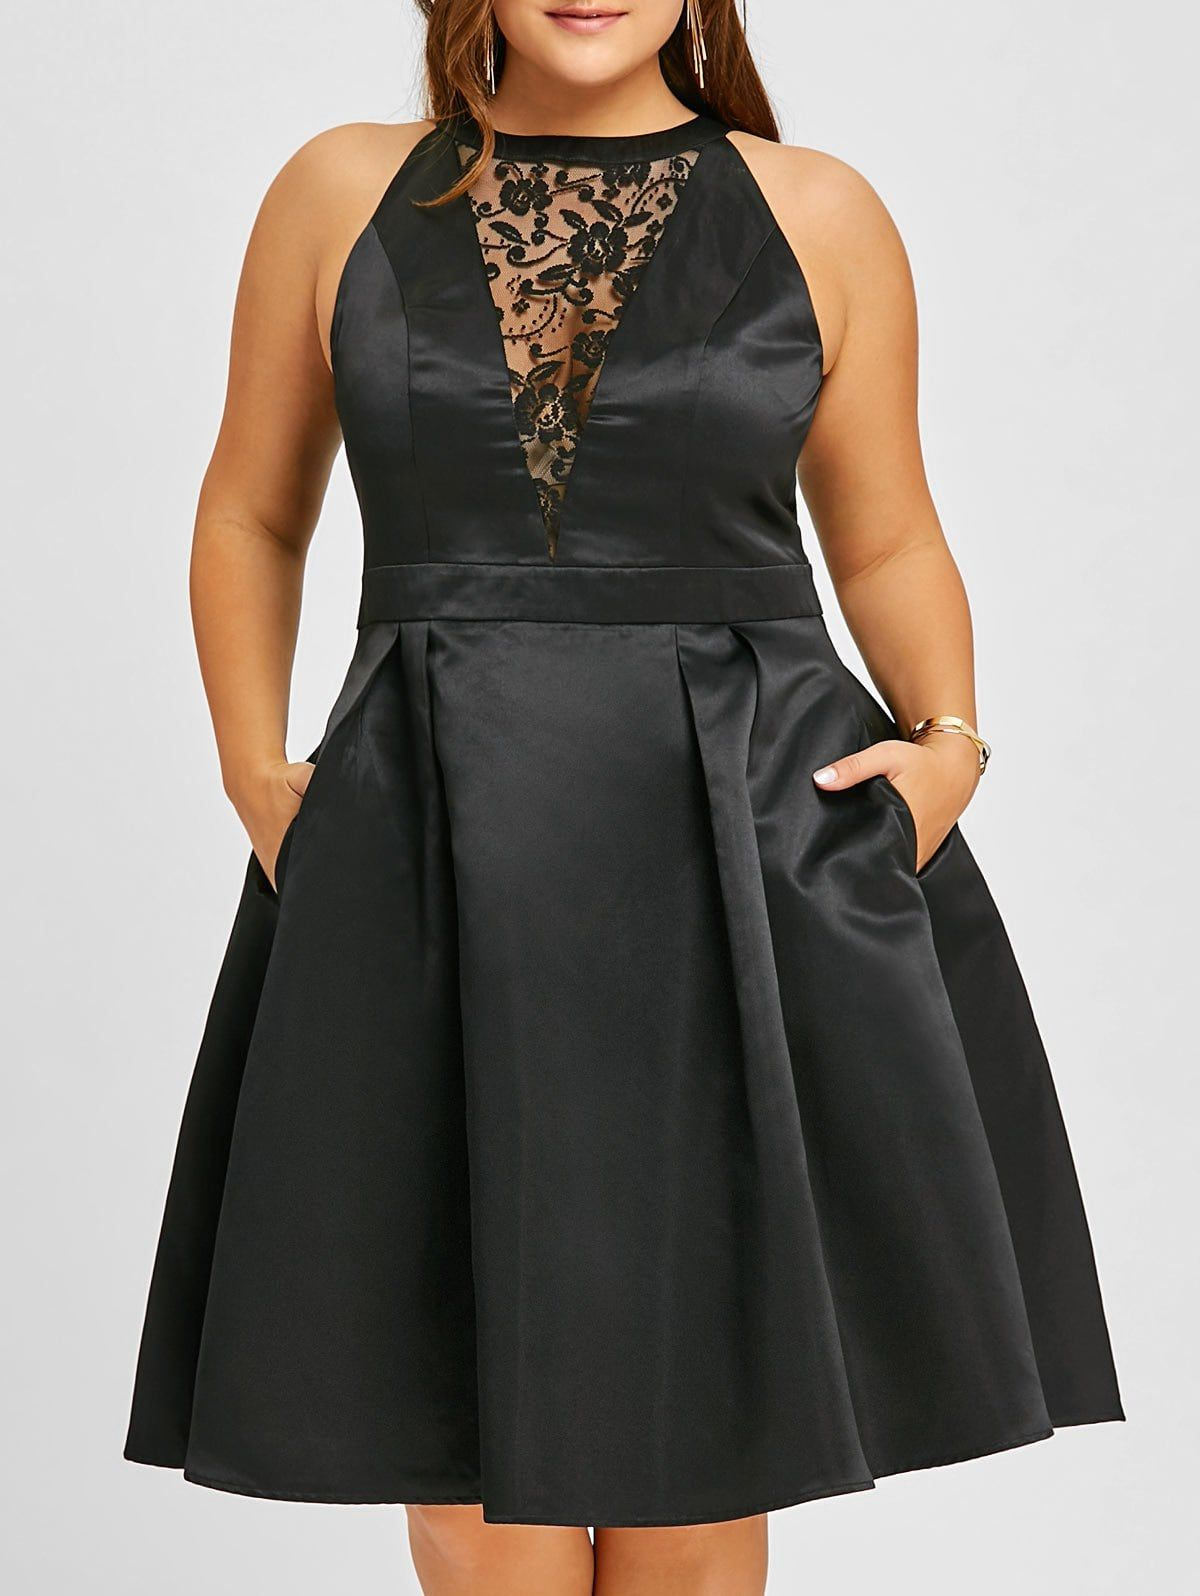 Plus Size Semi Cocktail Lace Insert Swing Dress Sleeveless Swing Dress Lace Dress Black Plus Size Cocktail Dresses